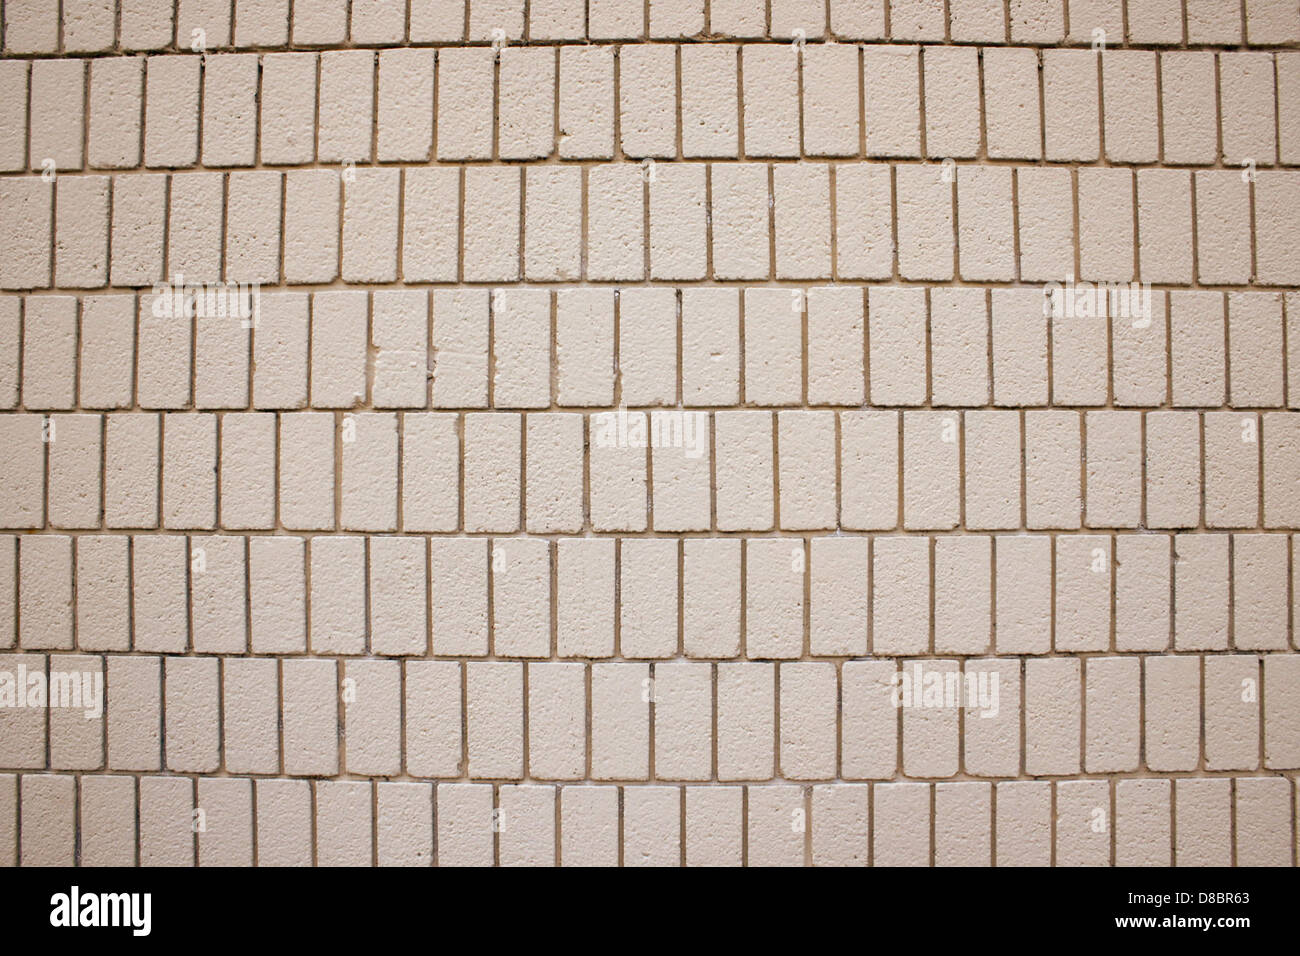 Tan Brick Wall Texture With Vertical Bricks